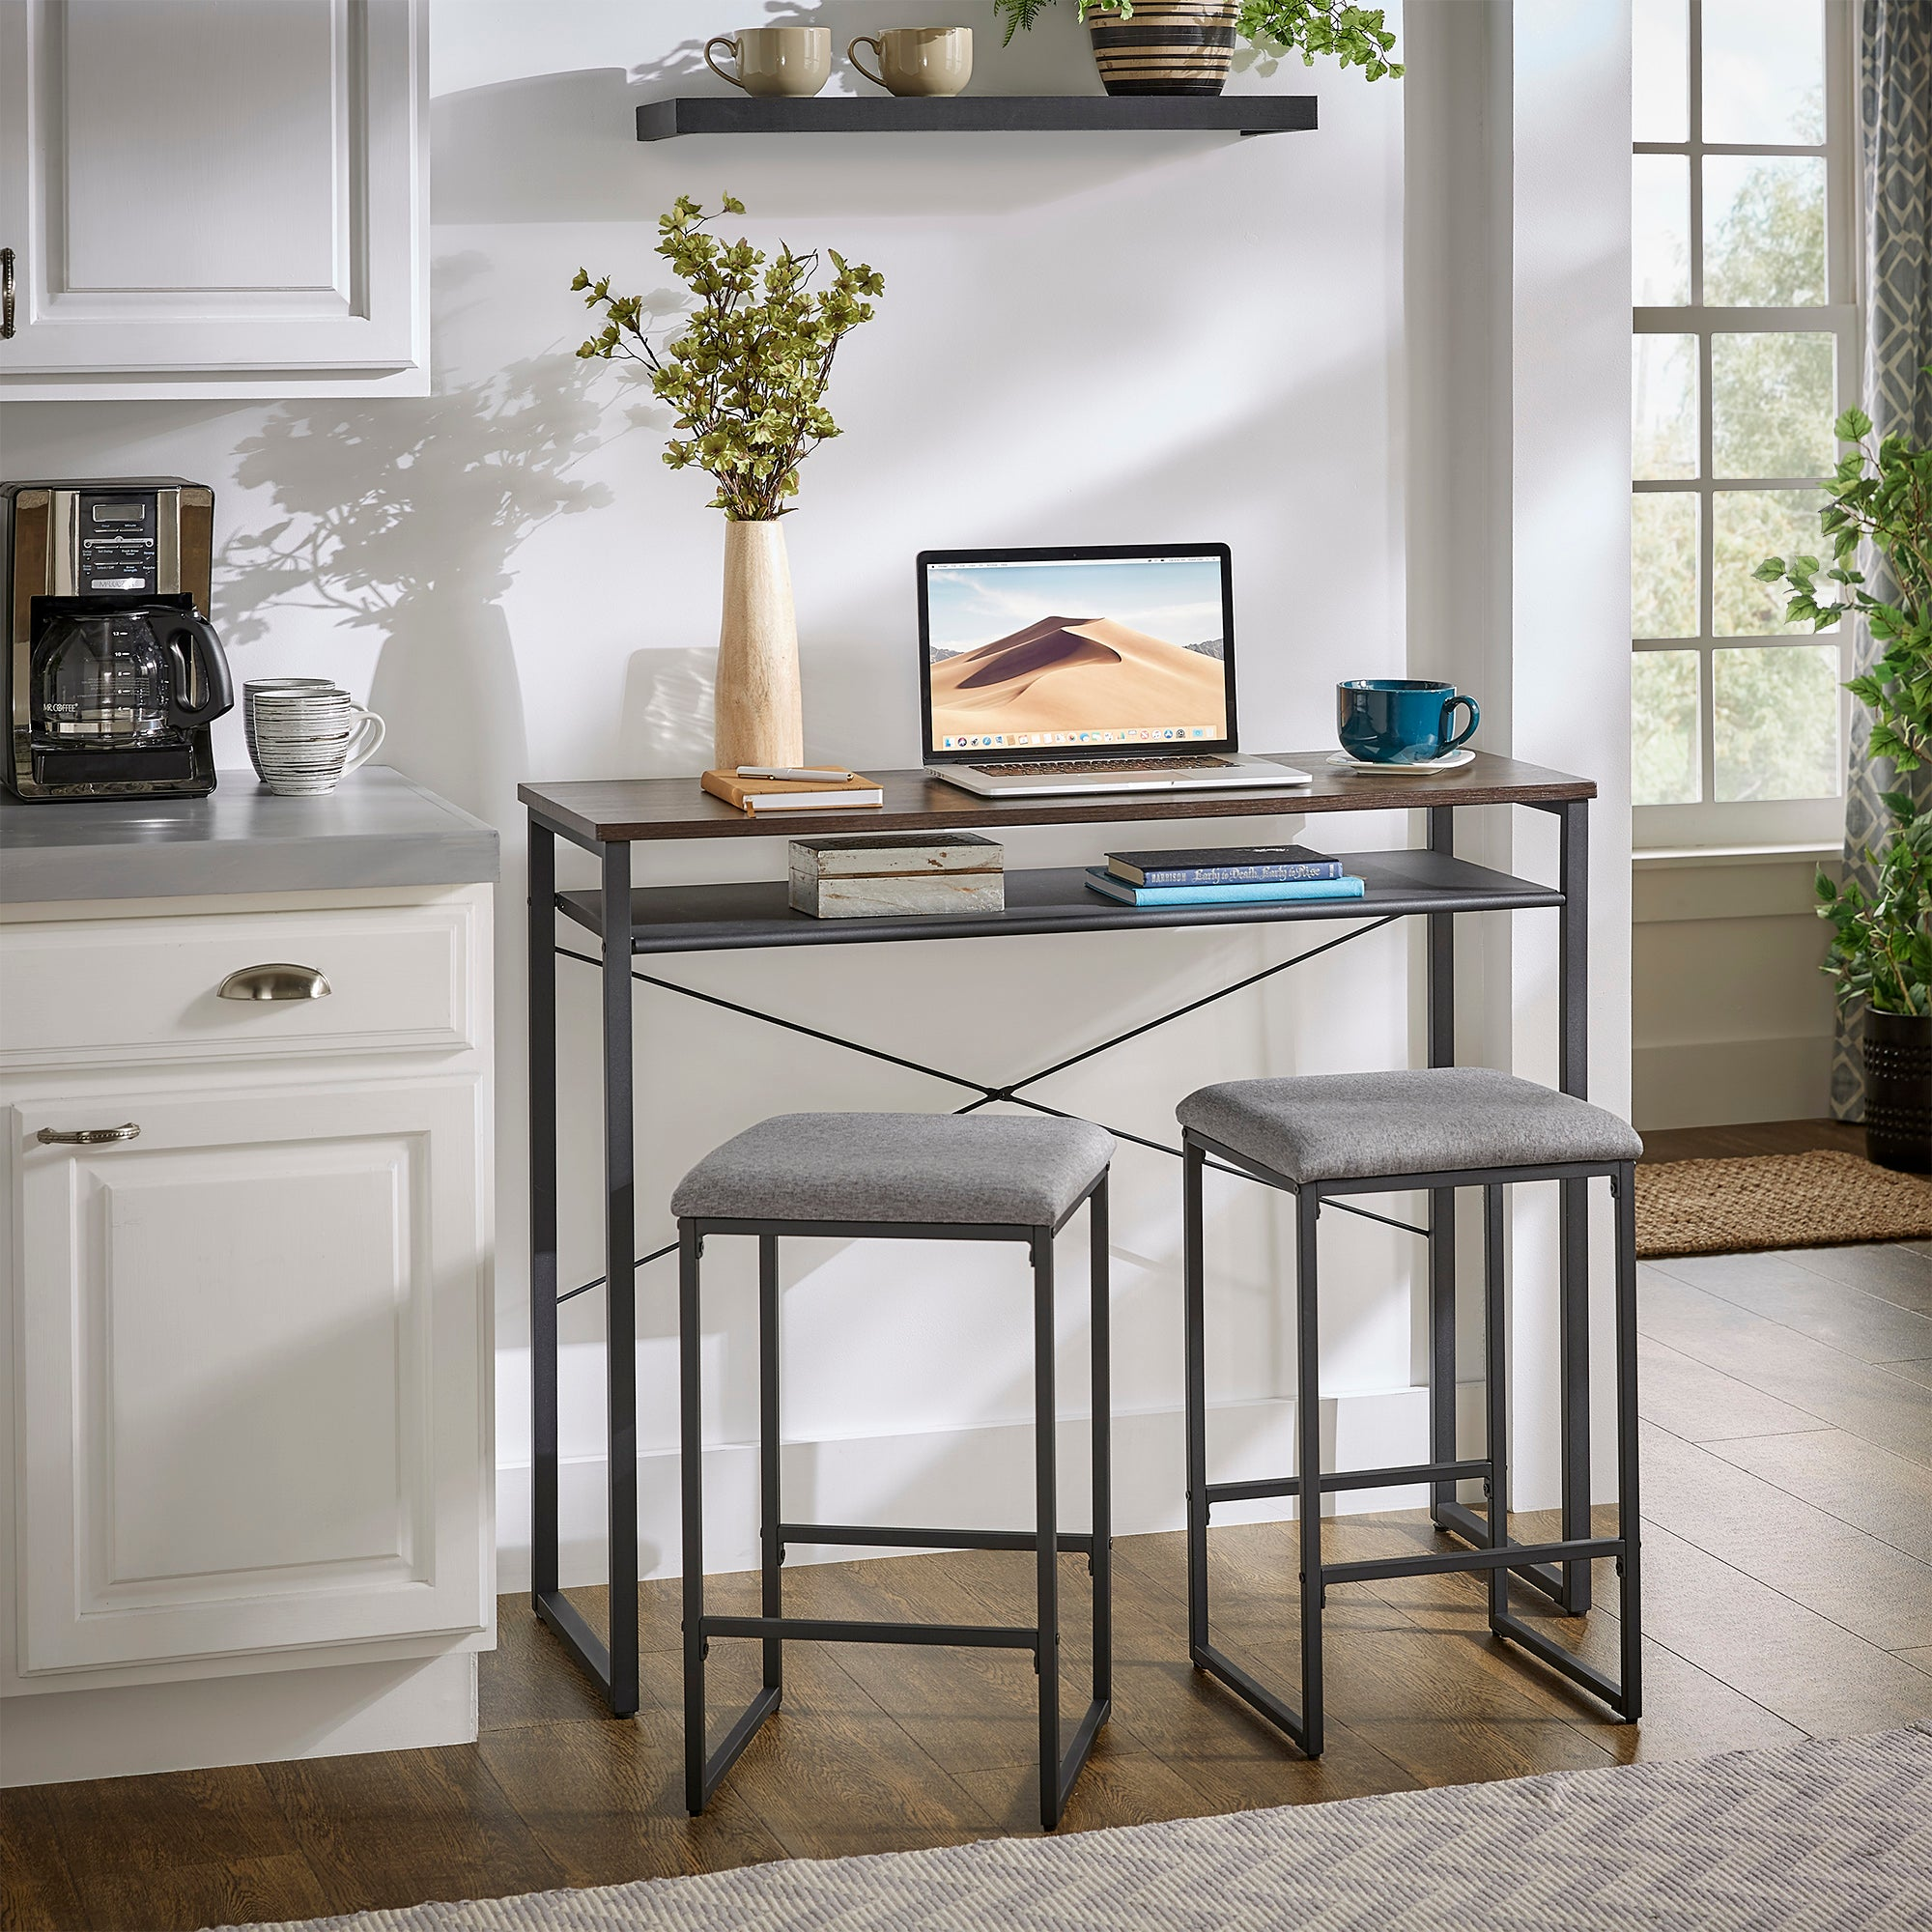 Metal and Wood 3-Piece Counter Height Set